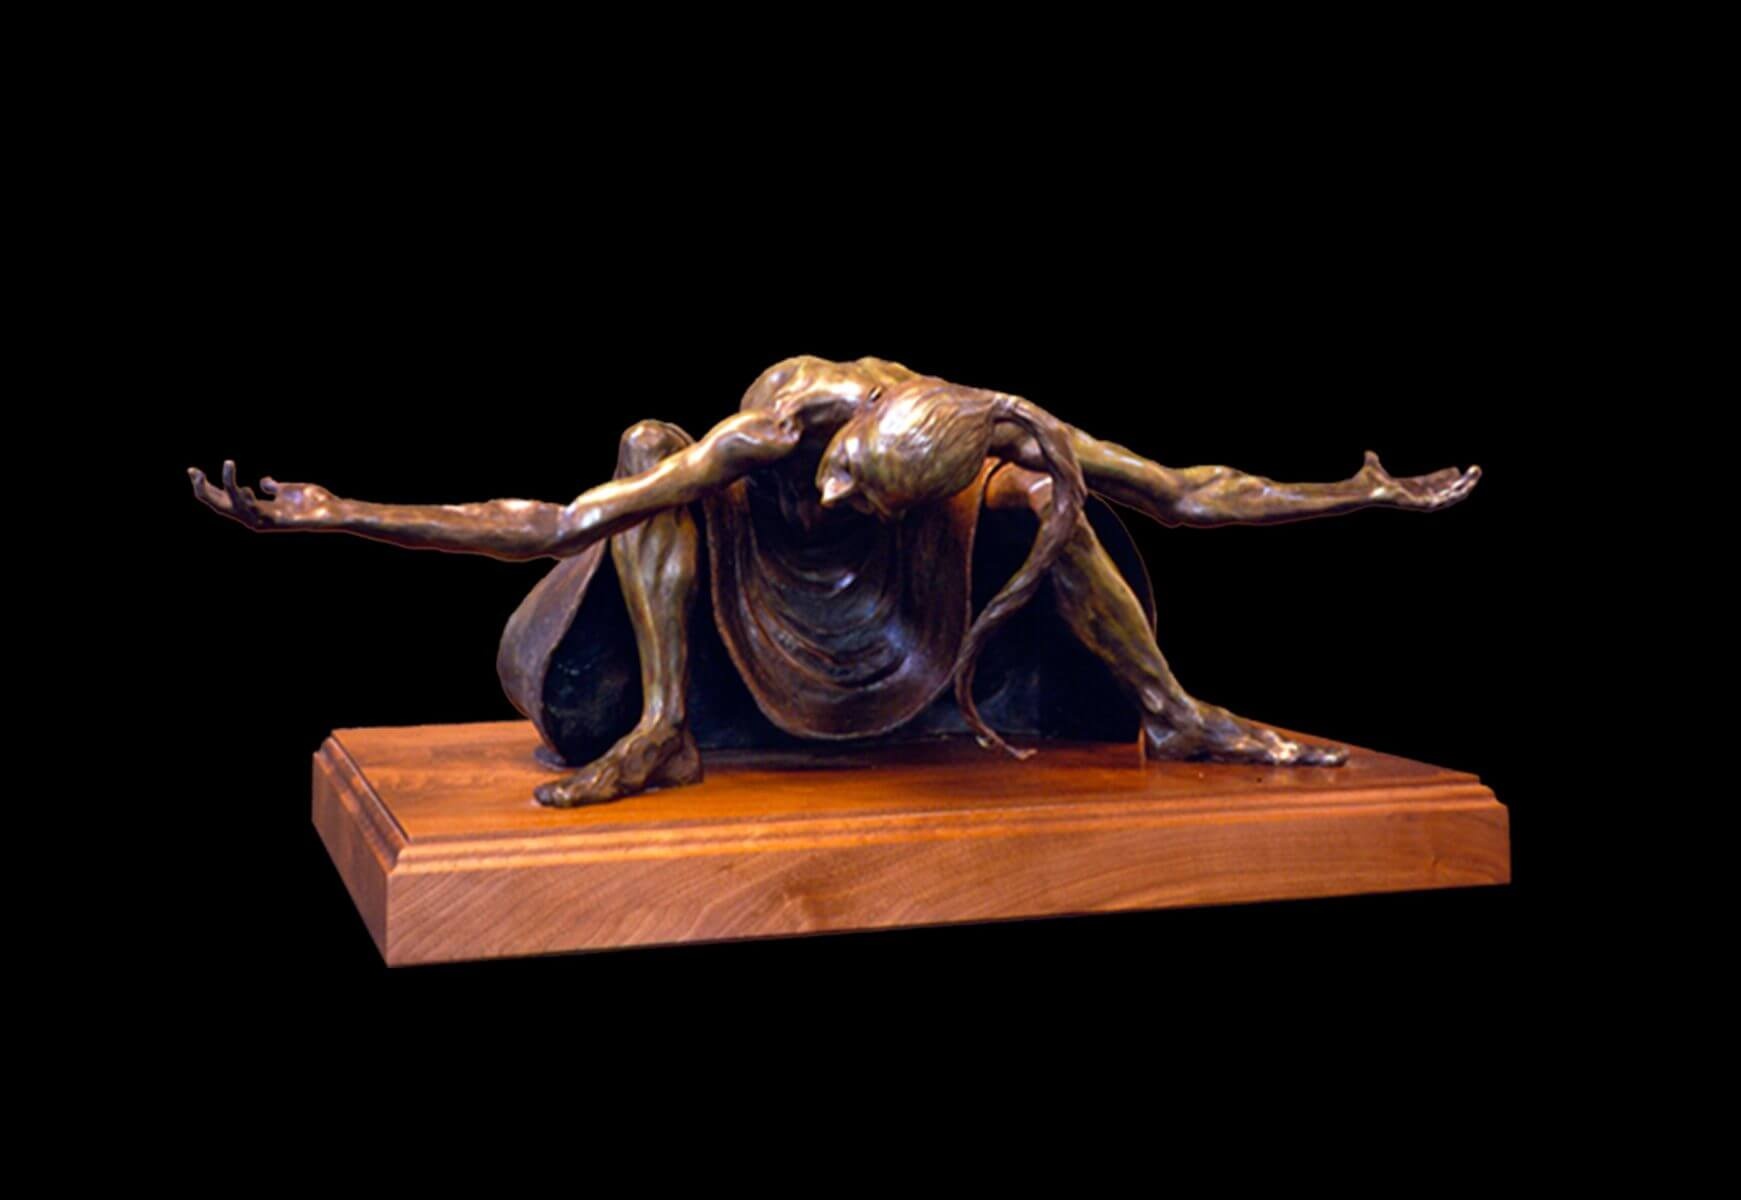 Rebecca a large fremale bronze dancer by sculptor Andrew DeVries